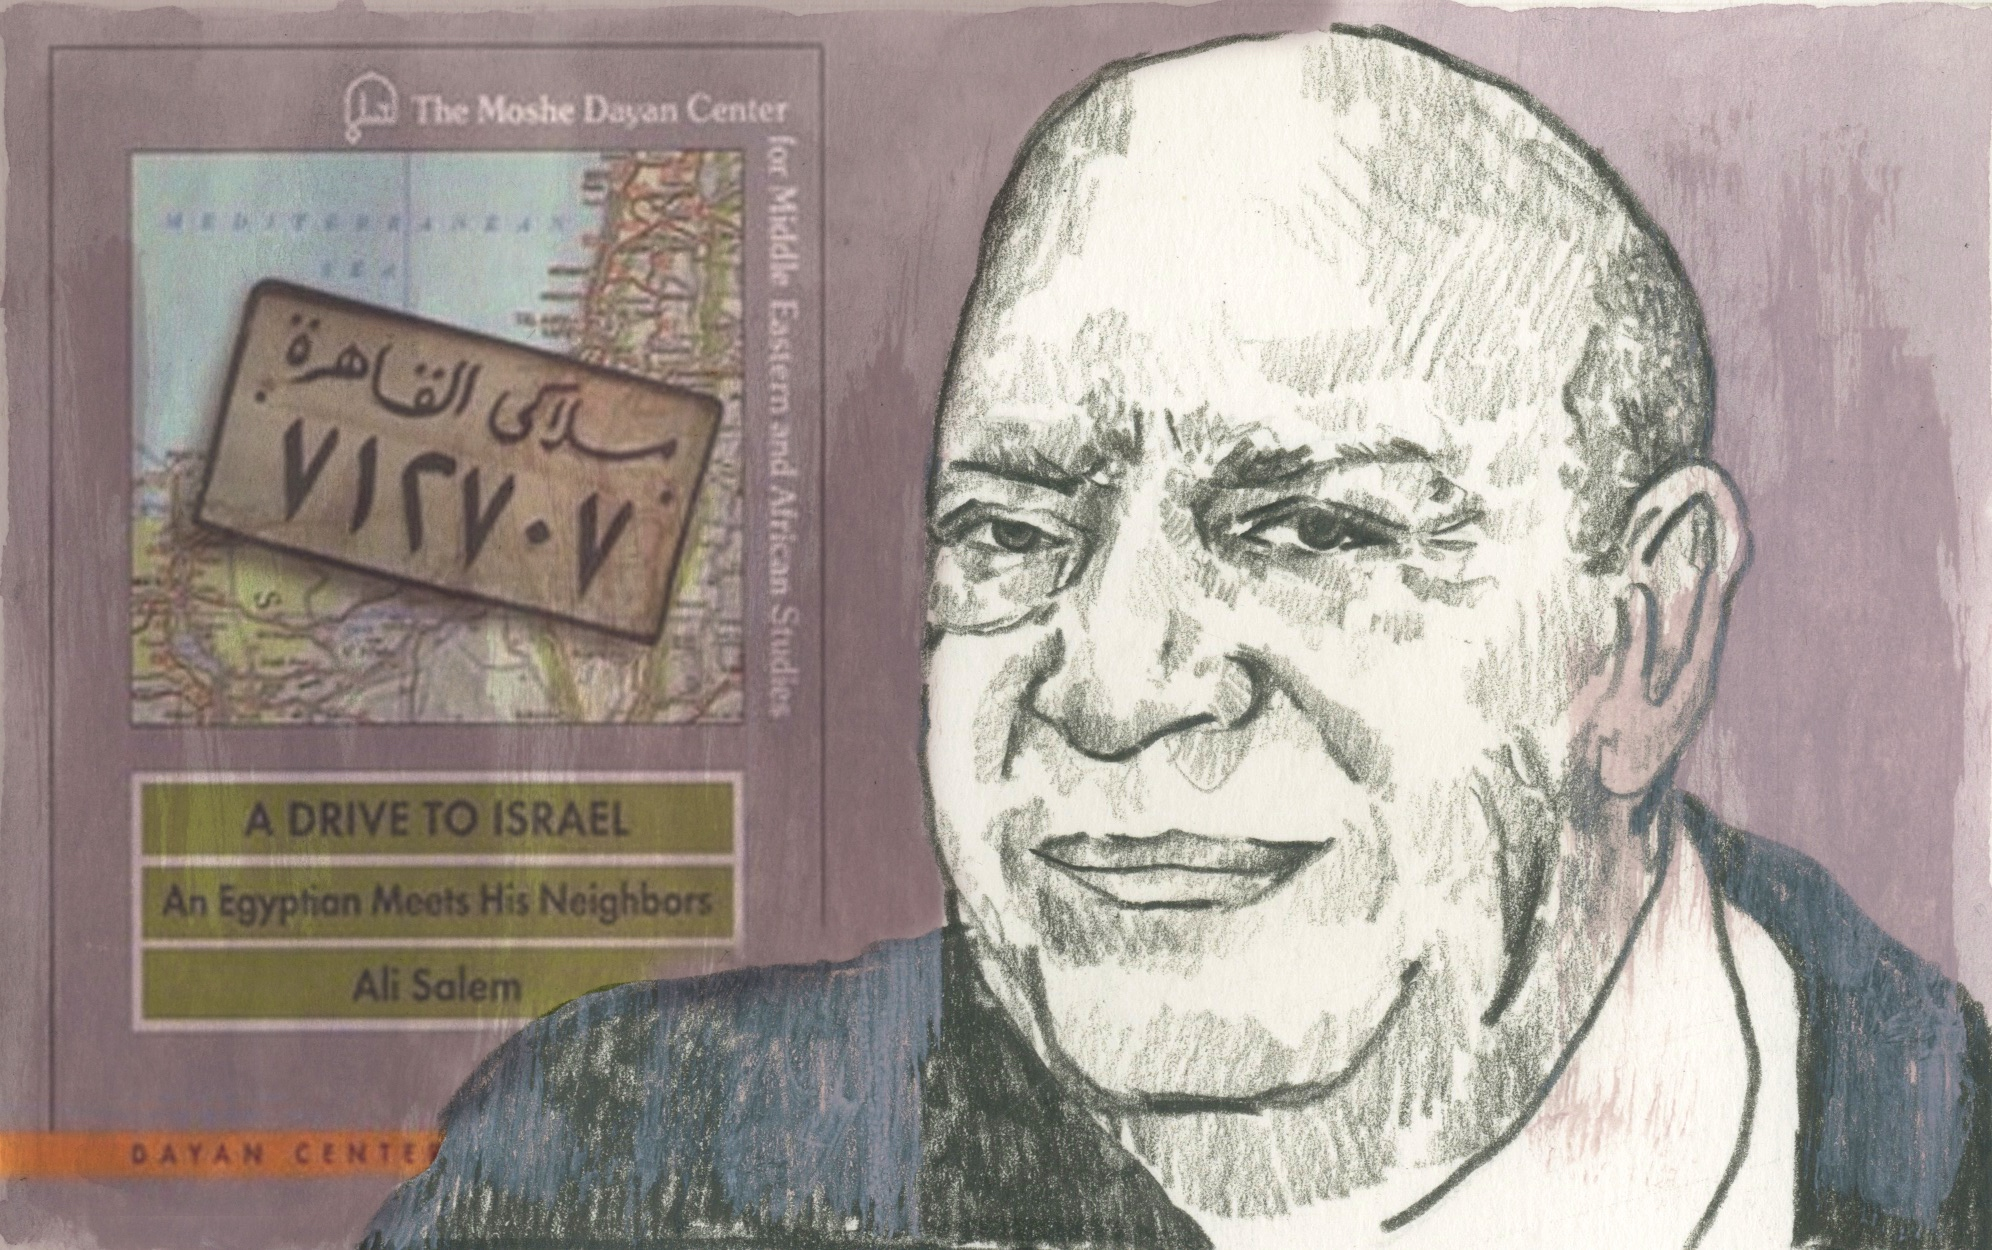 """25/09/15 Ali Salem, an Egyptian writer and playwright whose account of a solo drive through Israel became a best seller in his country but angered many Egyptians, has died at his home in Cairo.  In 2008, Mr. Salem won the Civil Courage Prize from the Train Foundation, which said he was a """"voice for peace and reason in the Middle East."""""""